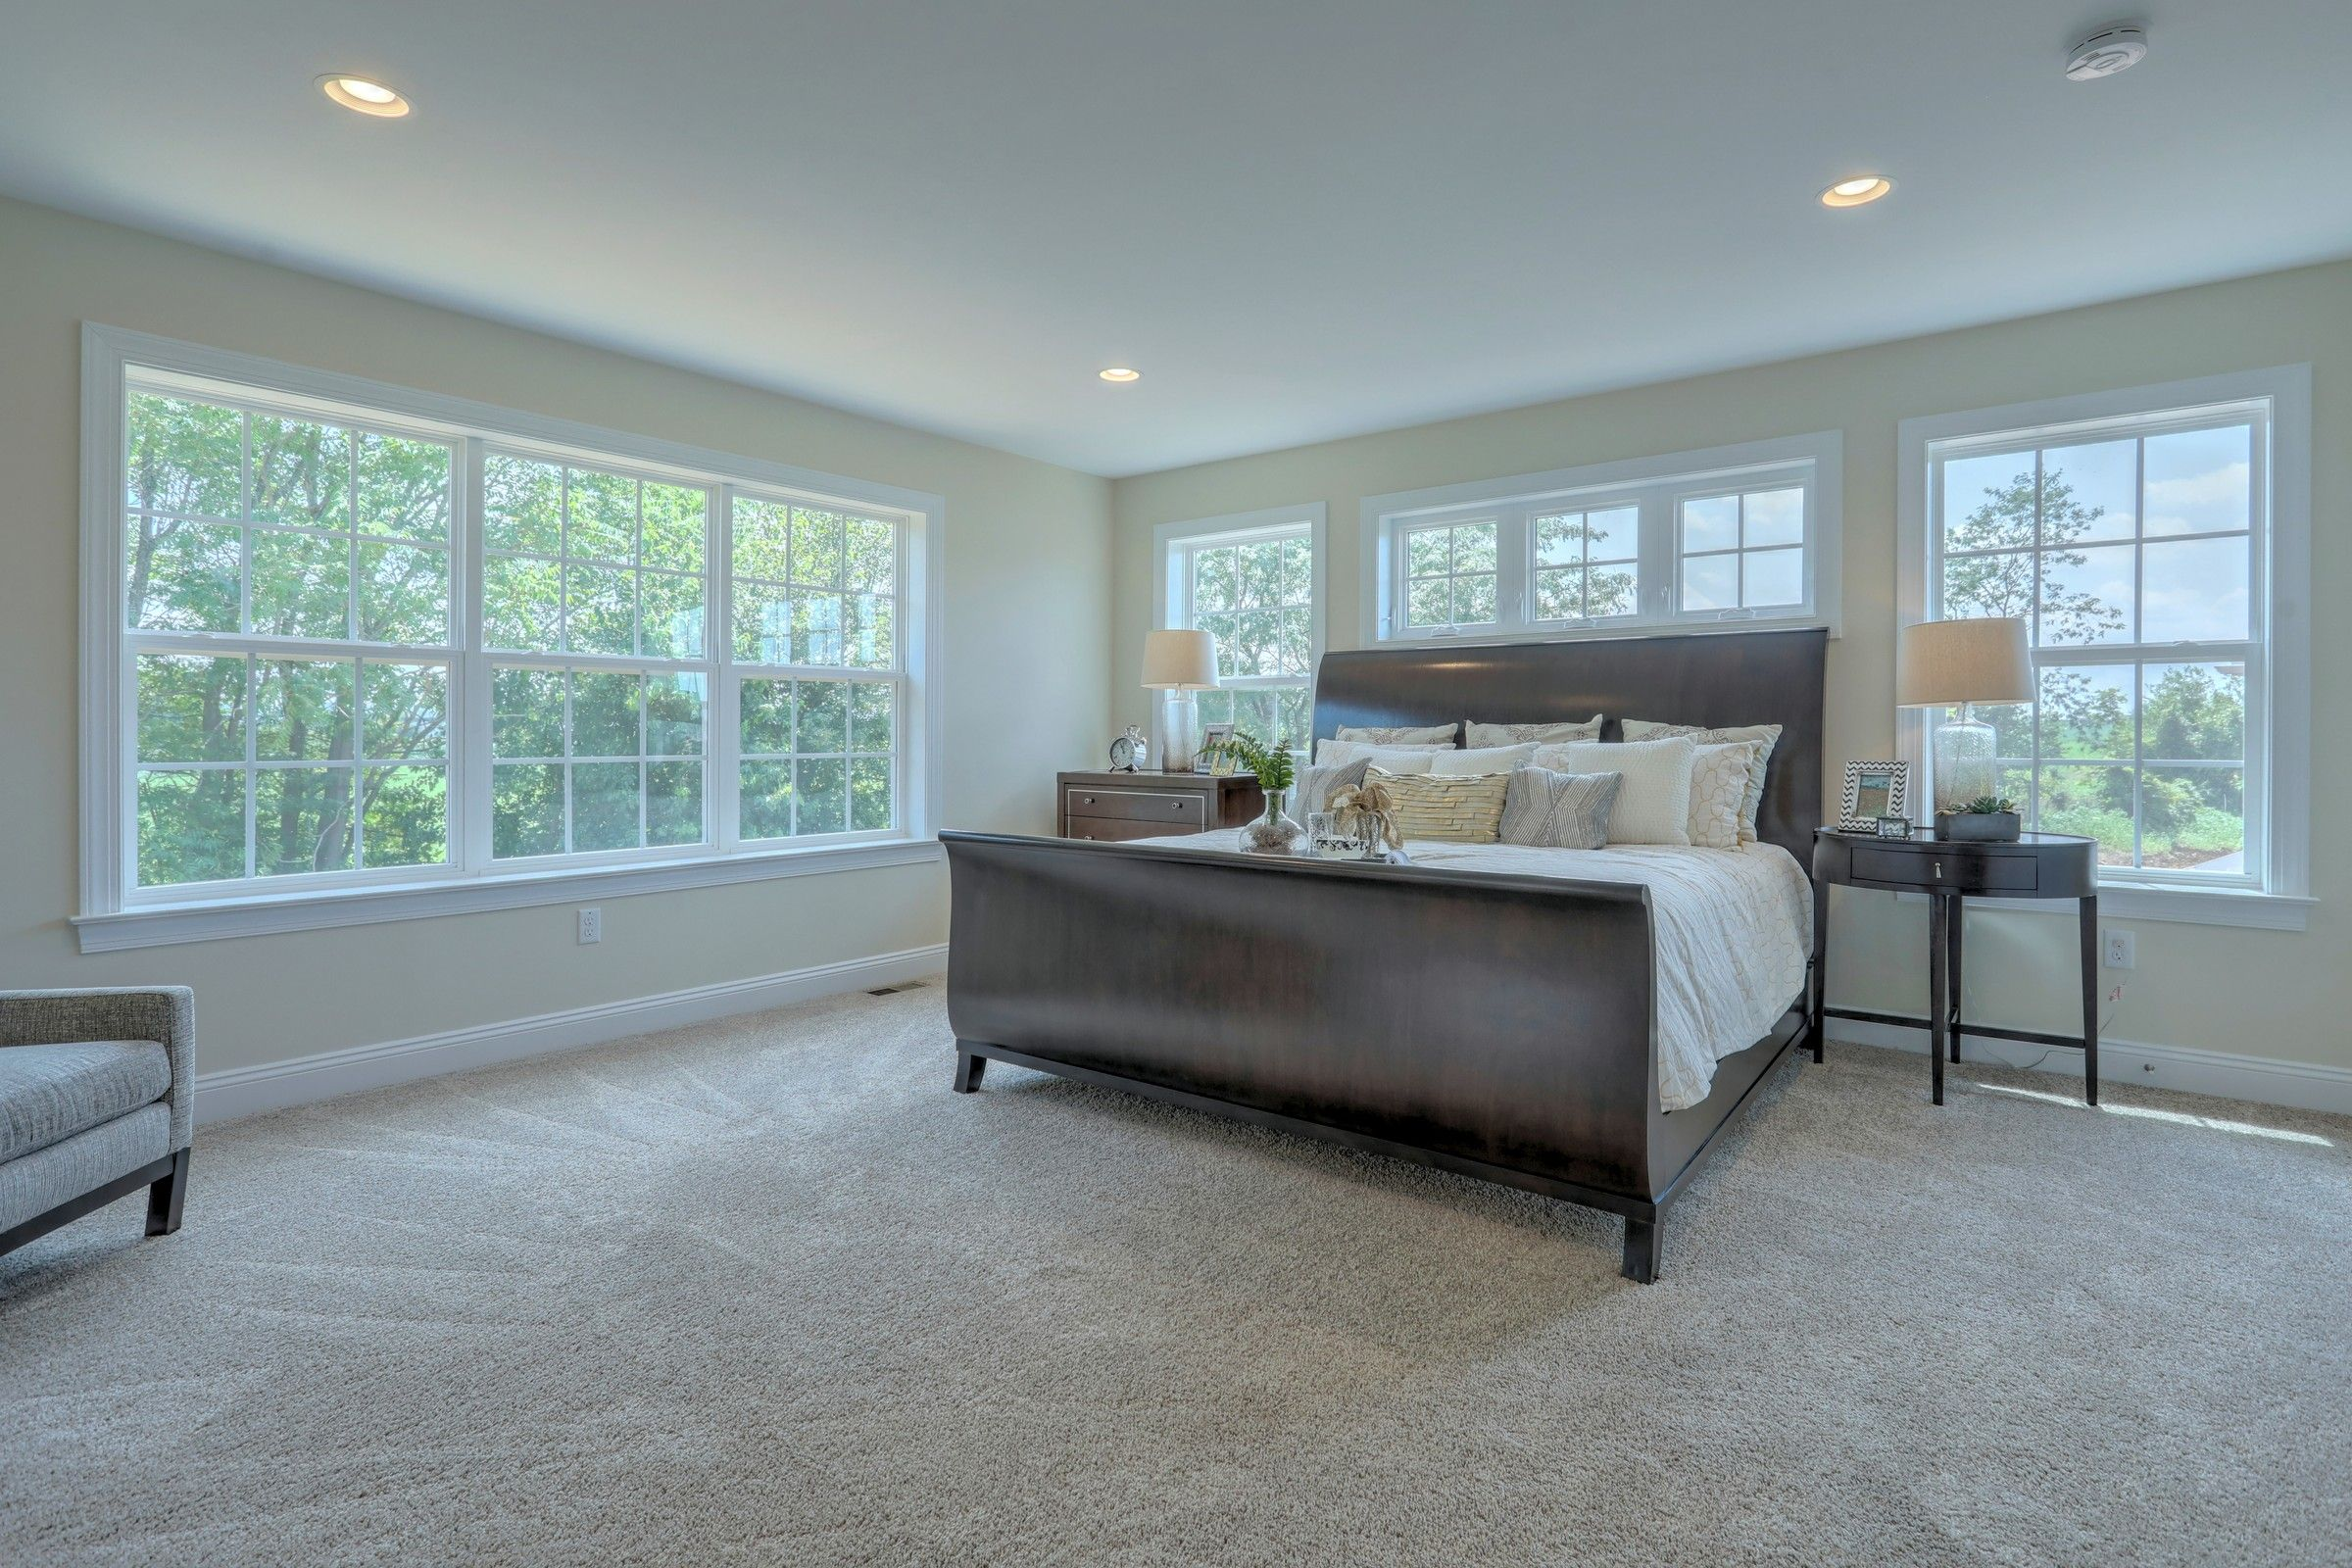 Bedroom featured in the Covington Manor By Keystone Custom Homes in Lancaster, PA